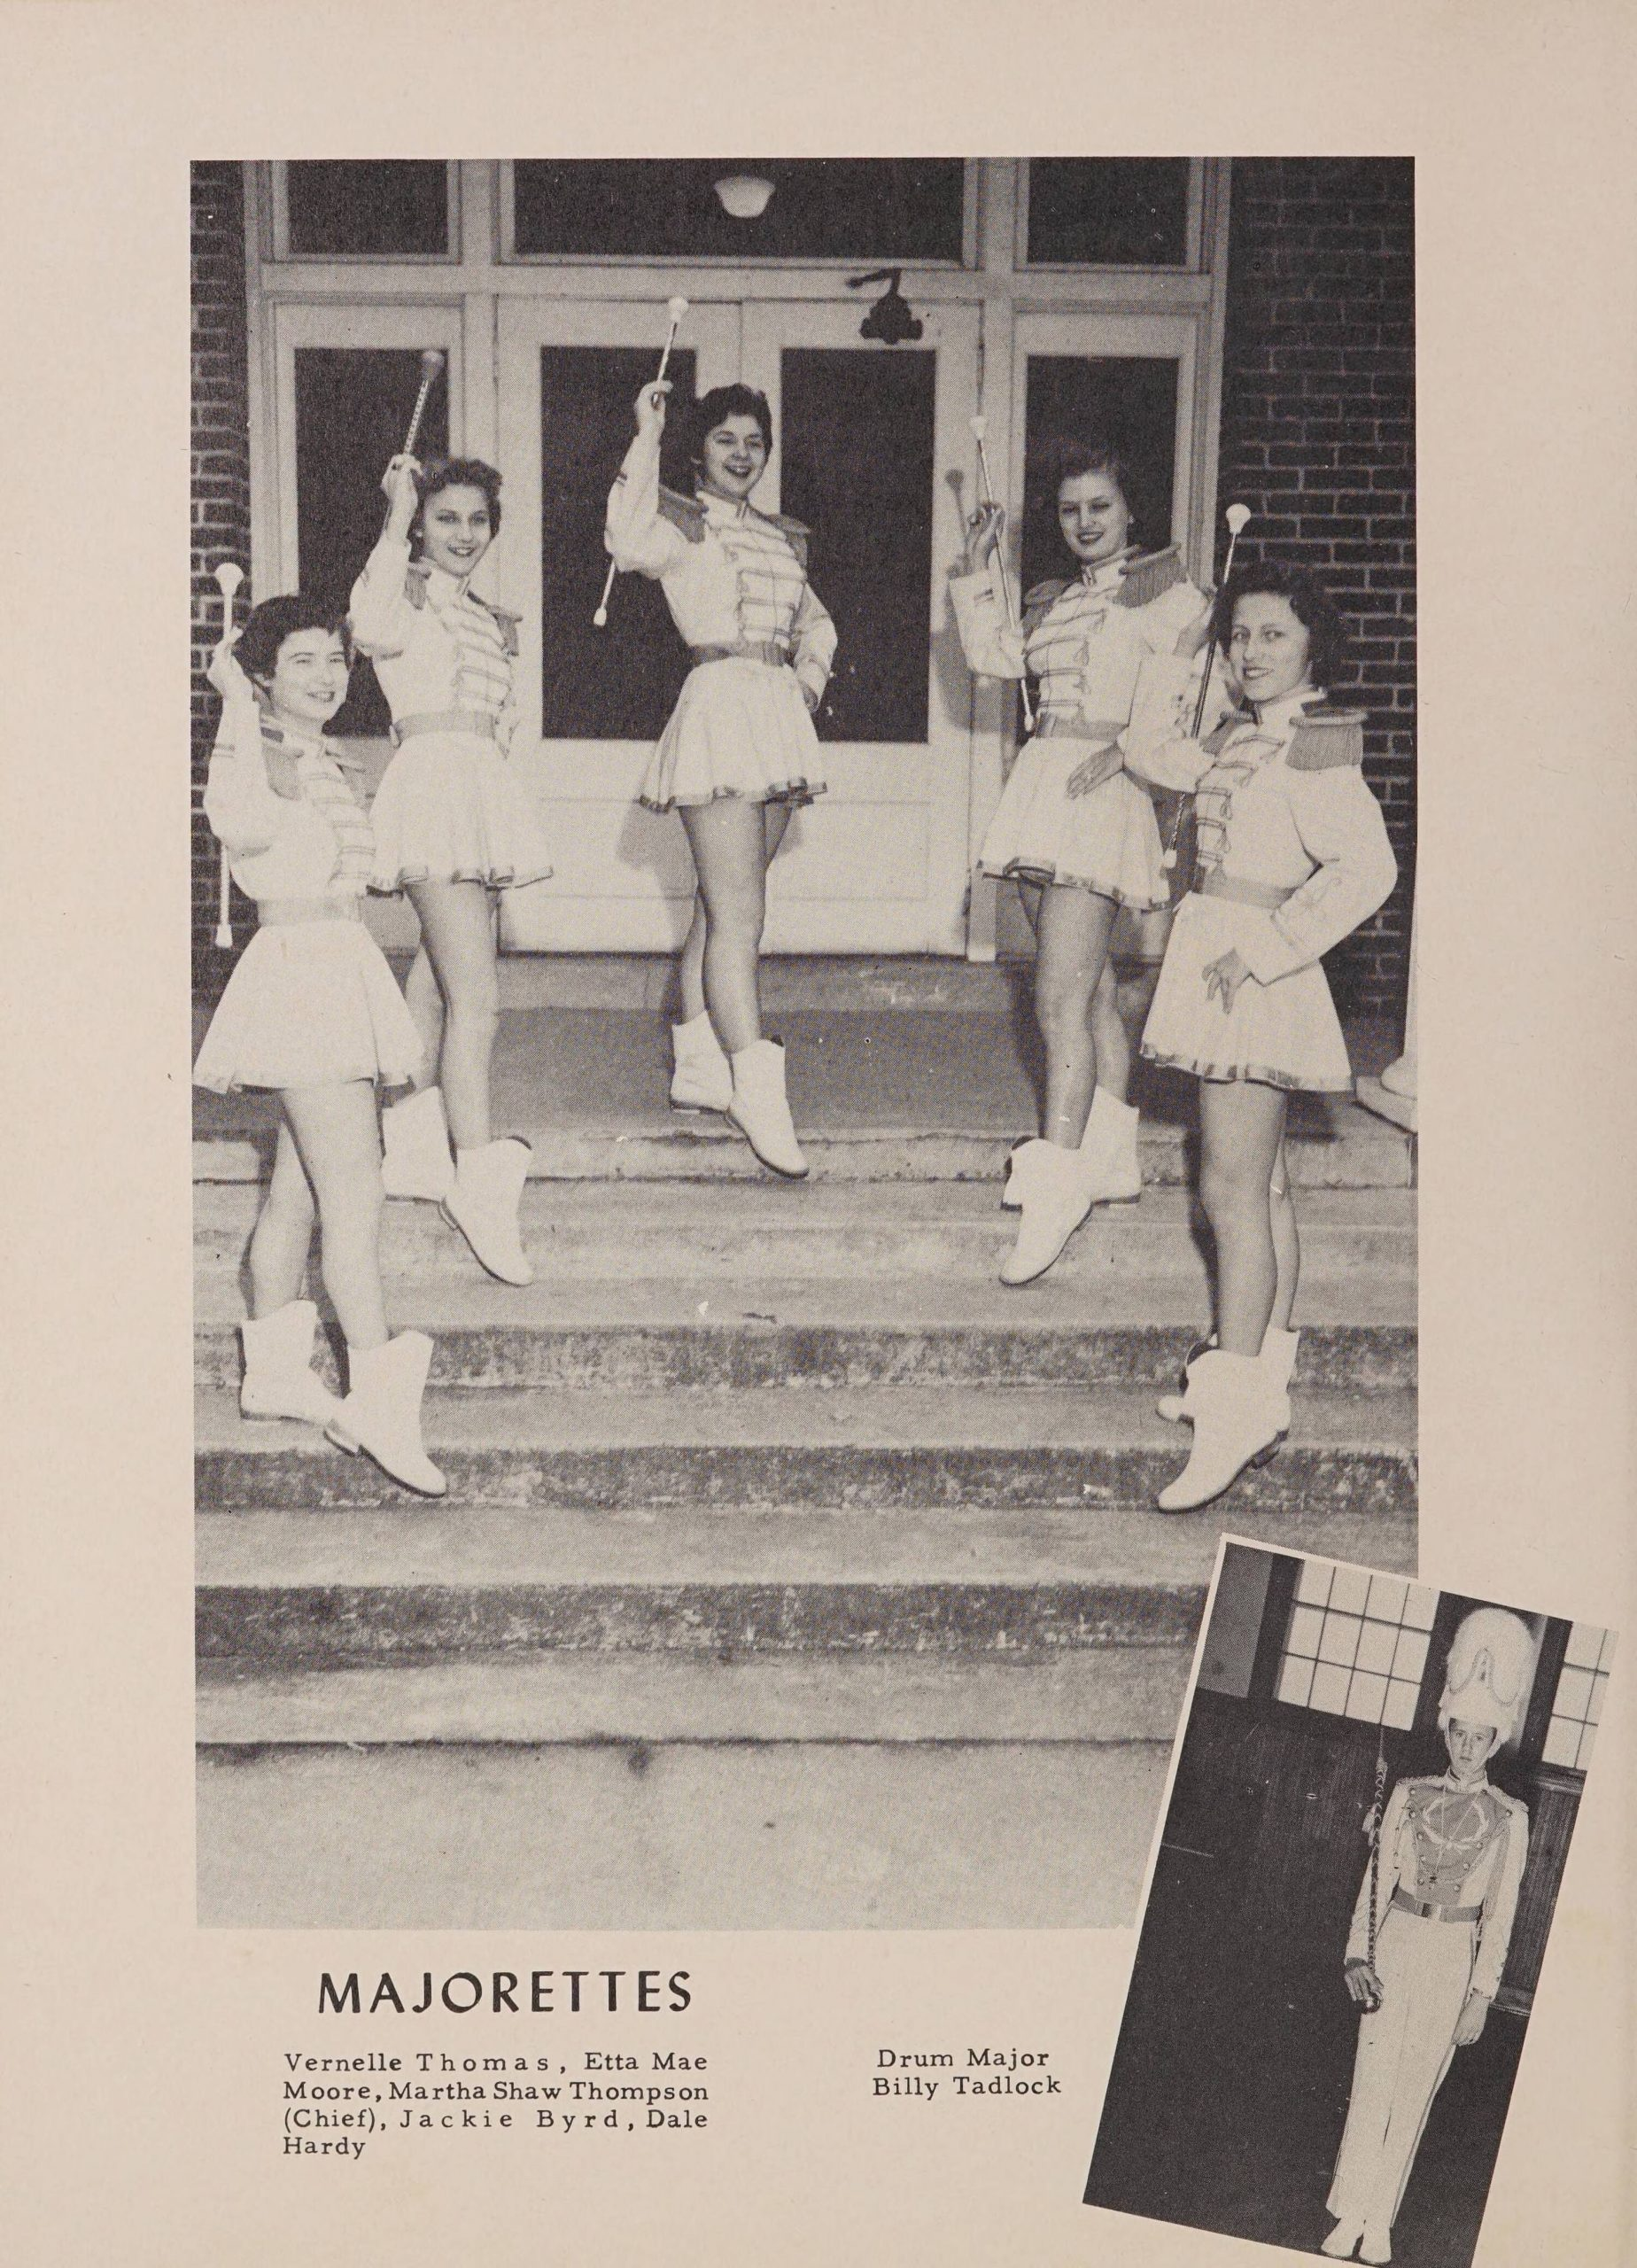 Majorettes page in the 1956 Winoca yearbook. The first picture shows 5 high school students in majorette uniforms and with batons. The second photo shows the drum major in their uniform.